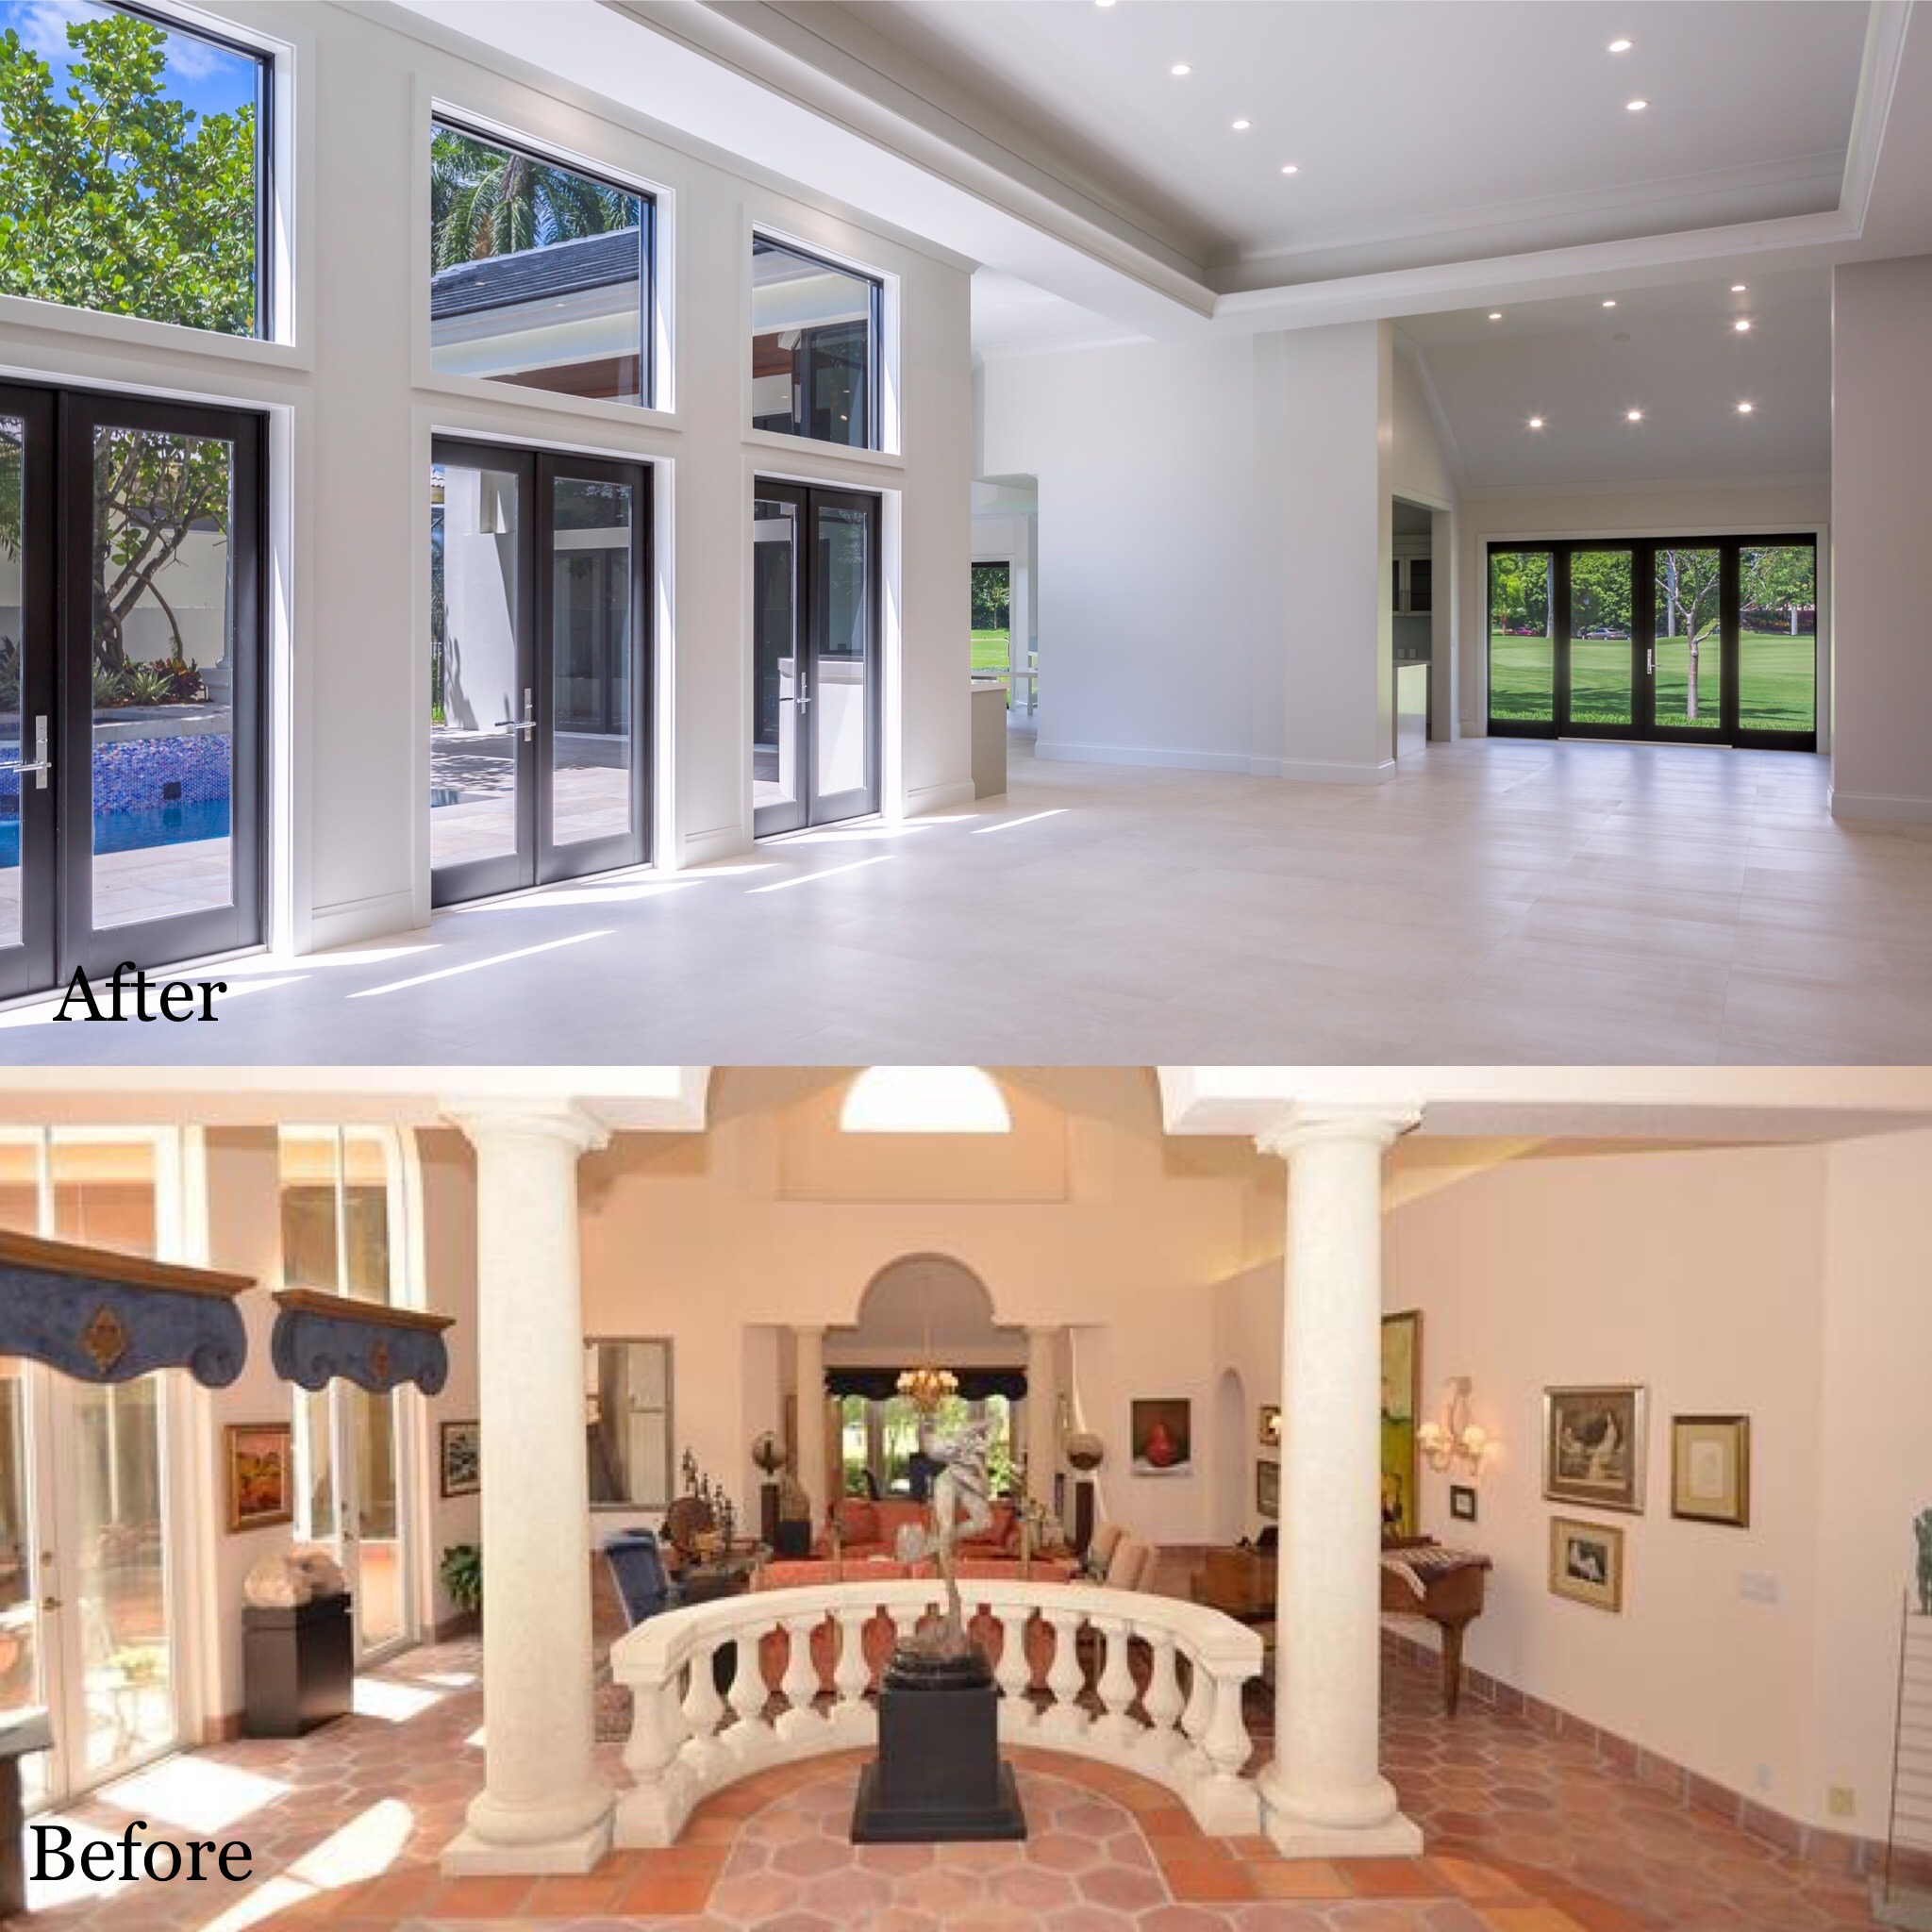 mag real estate & development construction before & after general contractor builder renovation south florida boca raton new custom luxury home for sale interior design st. andrews country club 3.jpg